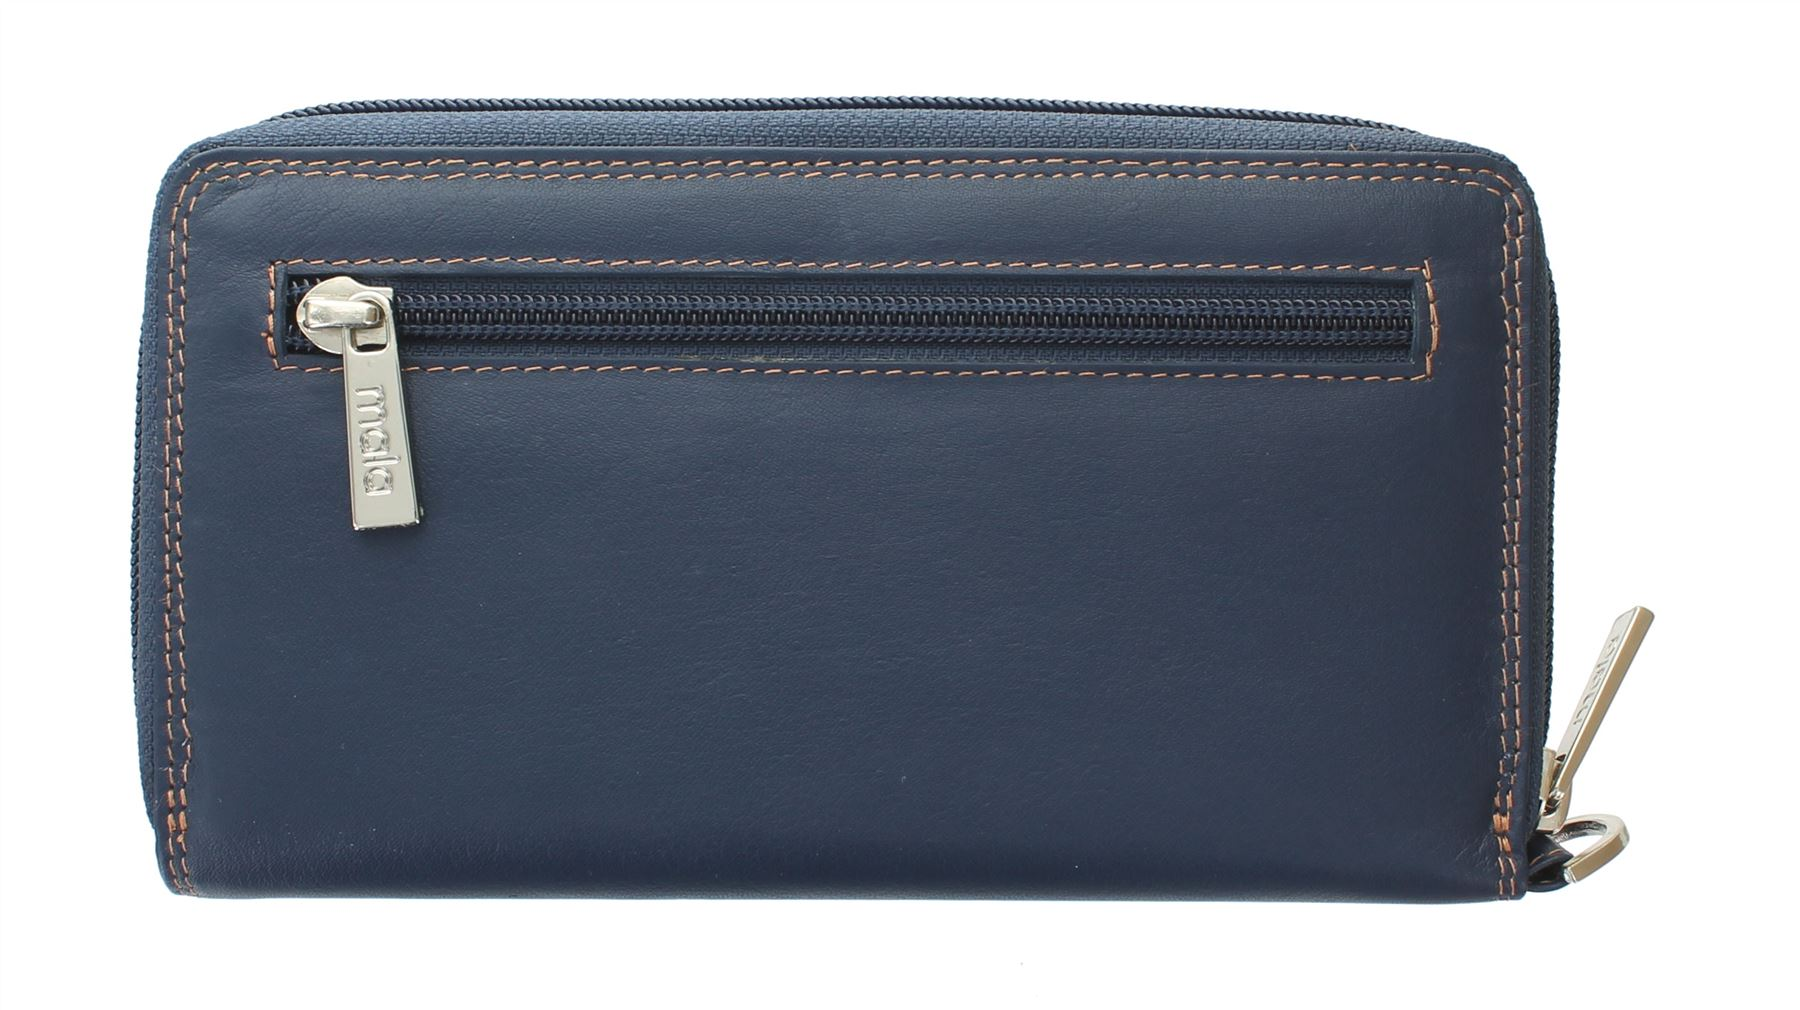 Mala Leather TABITHA Collection Wristlet Purse With RFID Protection 3276/_77